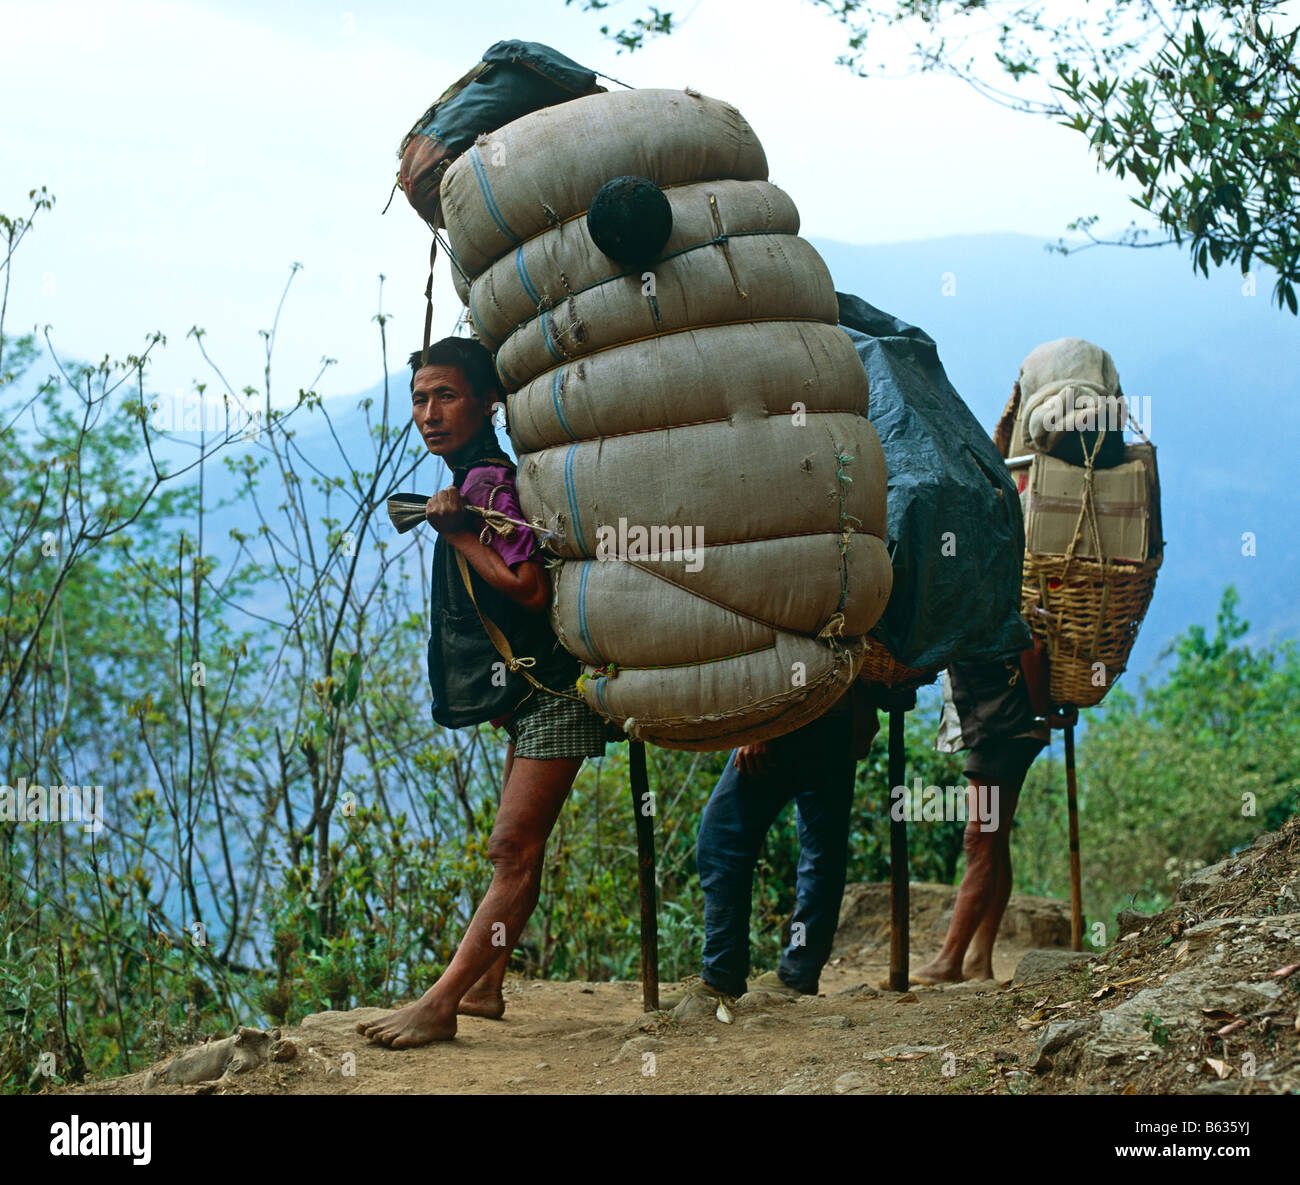 Porters Trekking In The Foothills Of The Annapurna Himalayas Nepal Asia - Stock Image